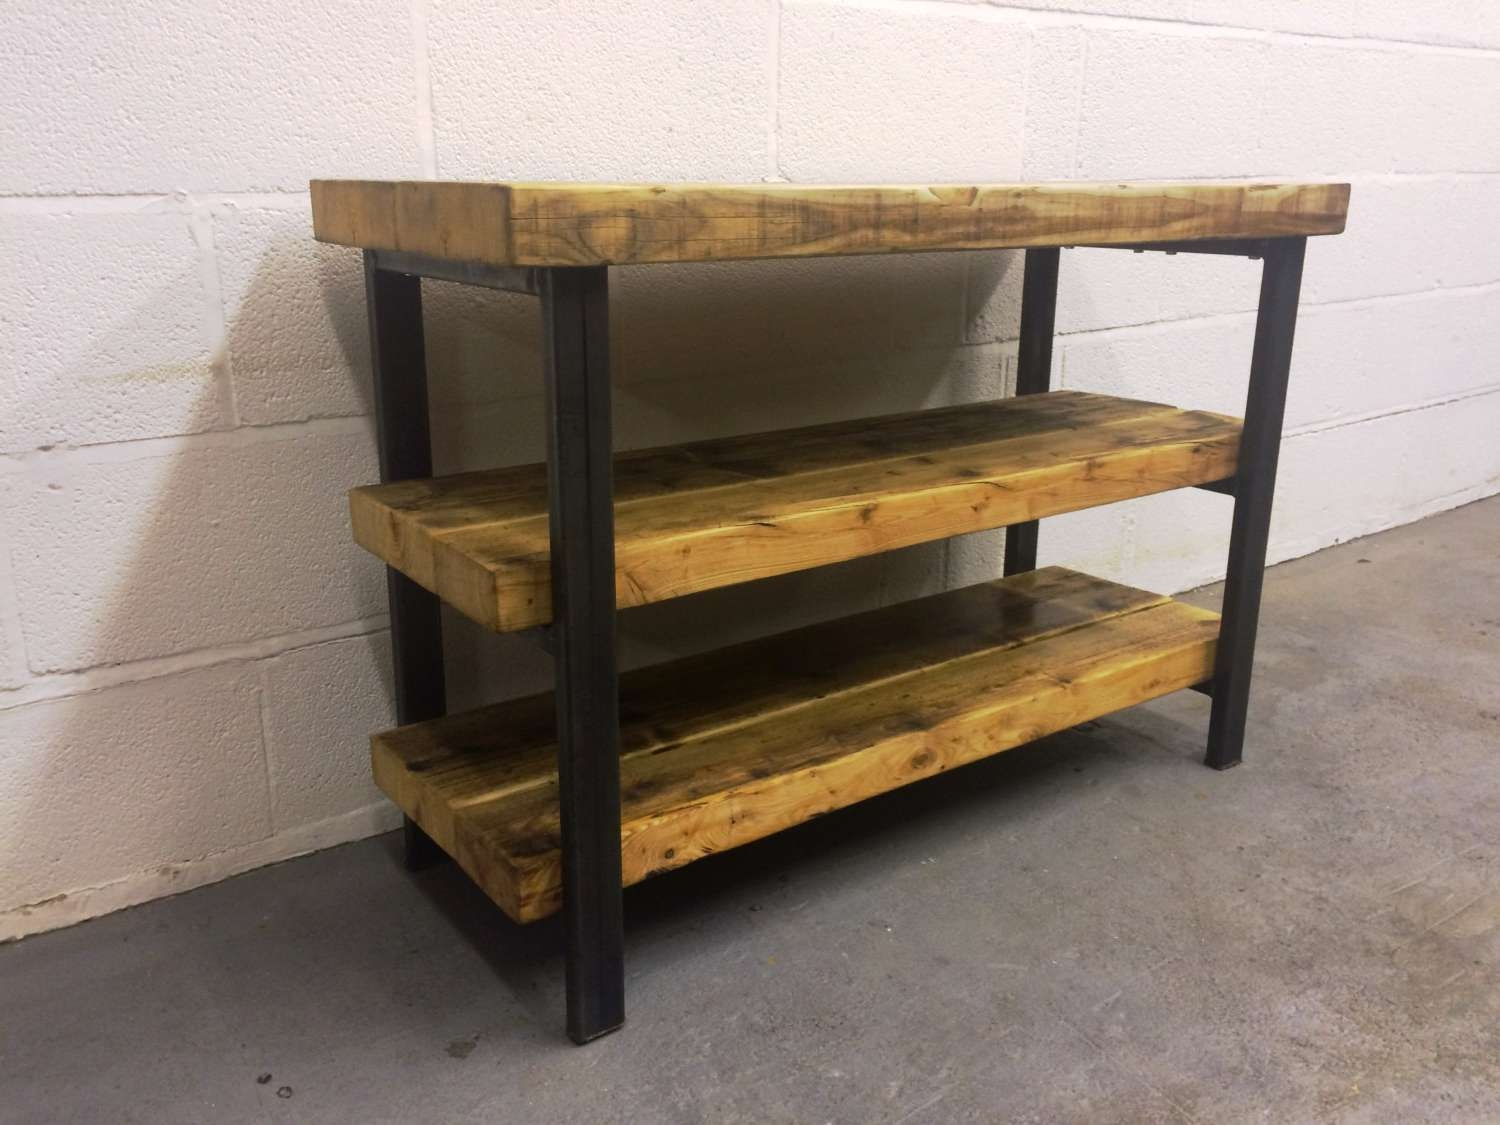 Industrial Chic Reclaimed Tv Stand Media Centre Coffee Table Pertaining To Reclaimed Wood And Metal Tv Stands (Gallery 3 of 20)